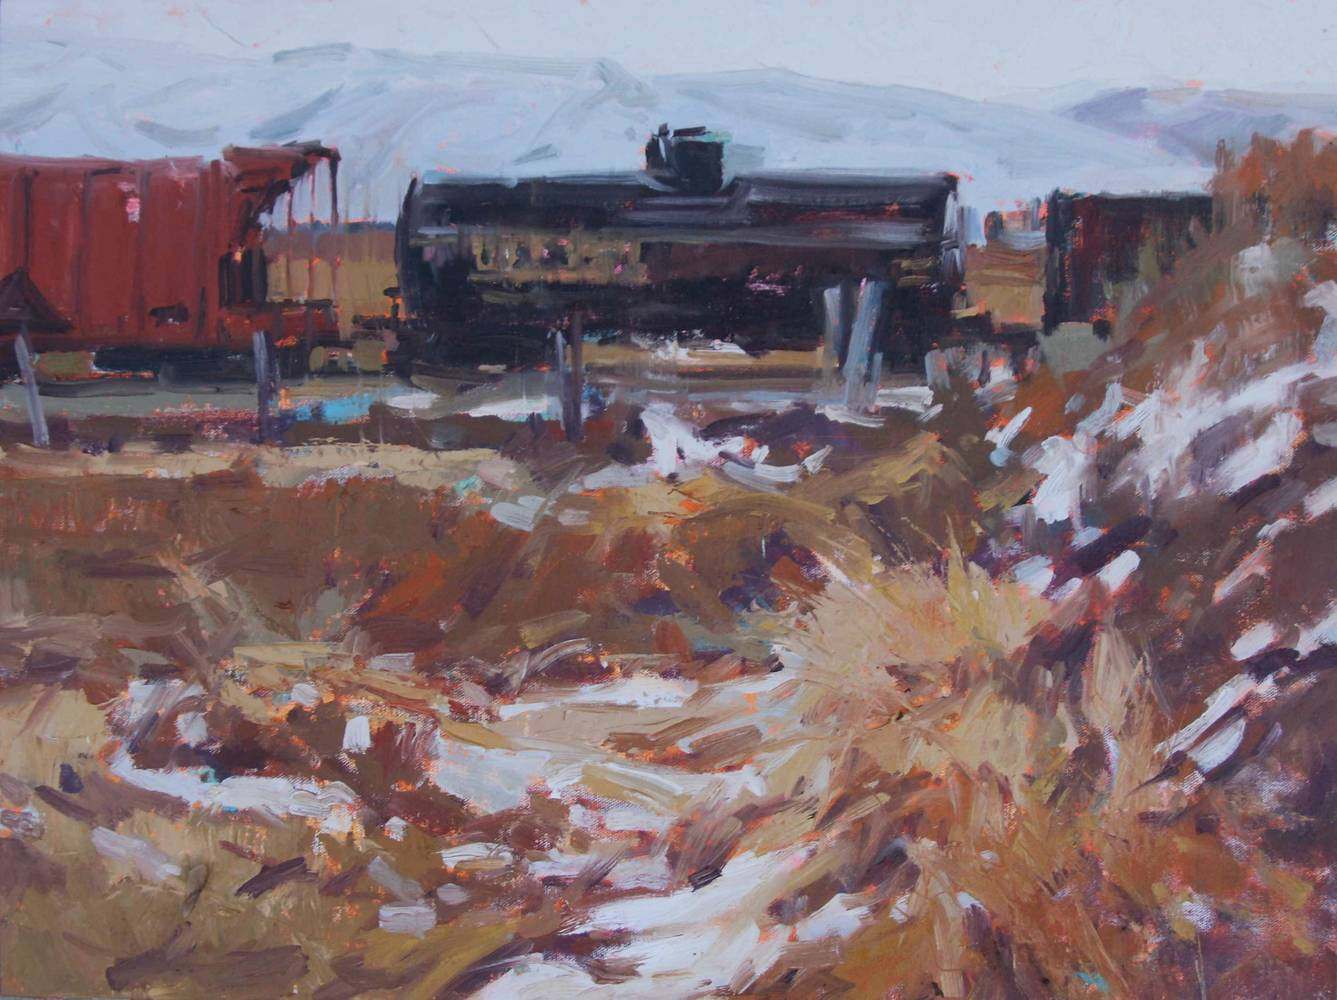 Oil painting Train on the Tracks by Susette Gertsch